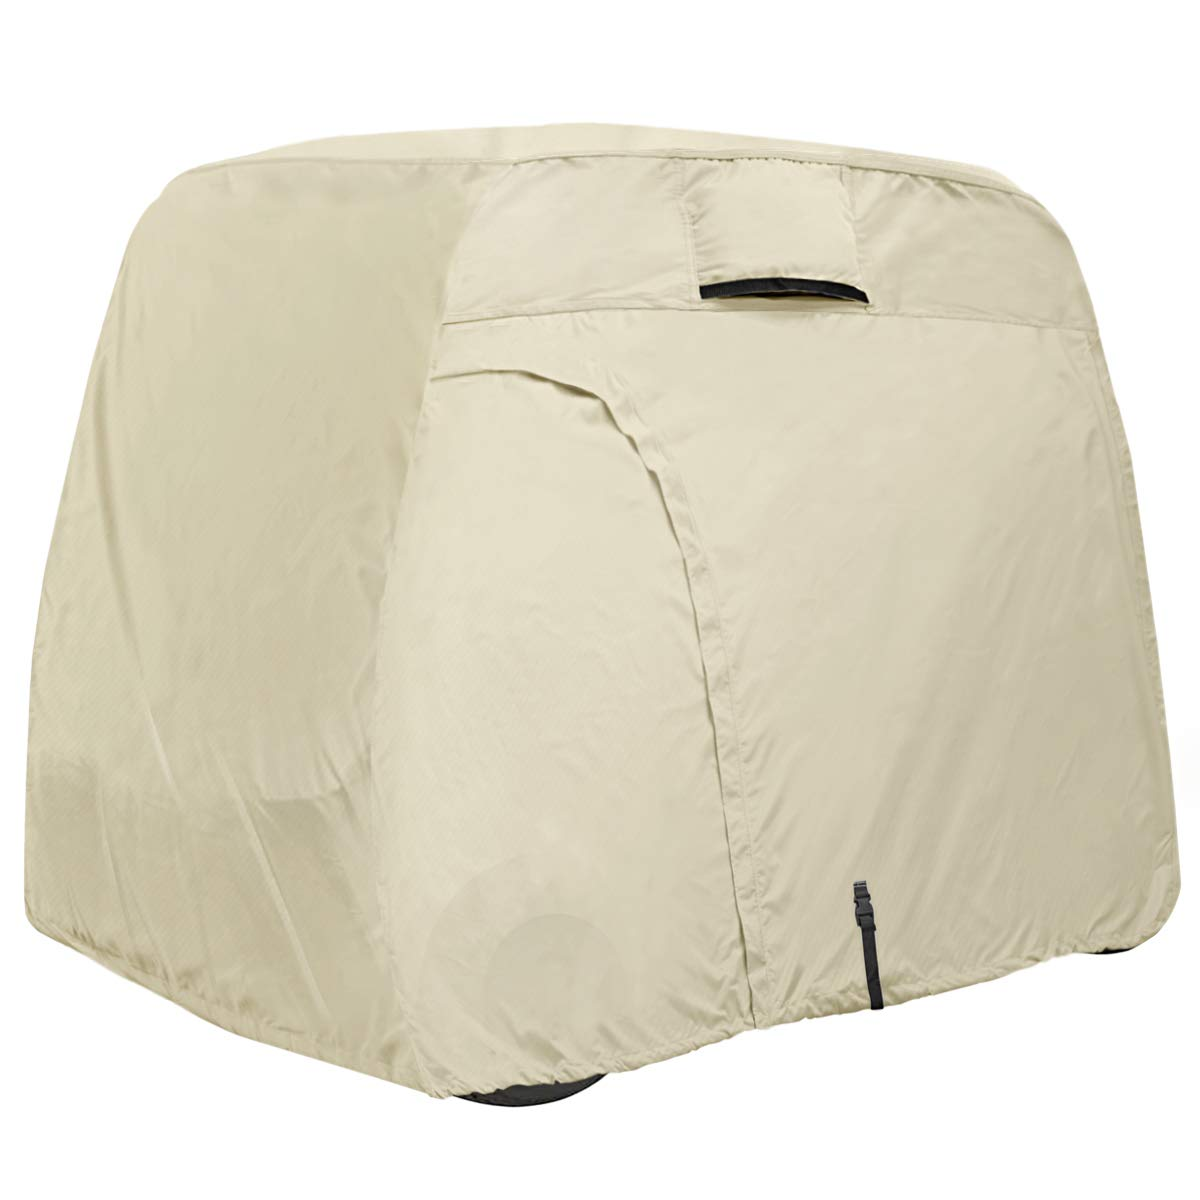 Explore Land 600D Waterproof Golf Cart Cover Fits for Most Brand 4 Passengers Golf Cart (Light Tan) by Explore Land